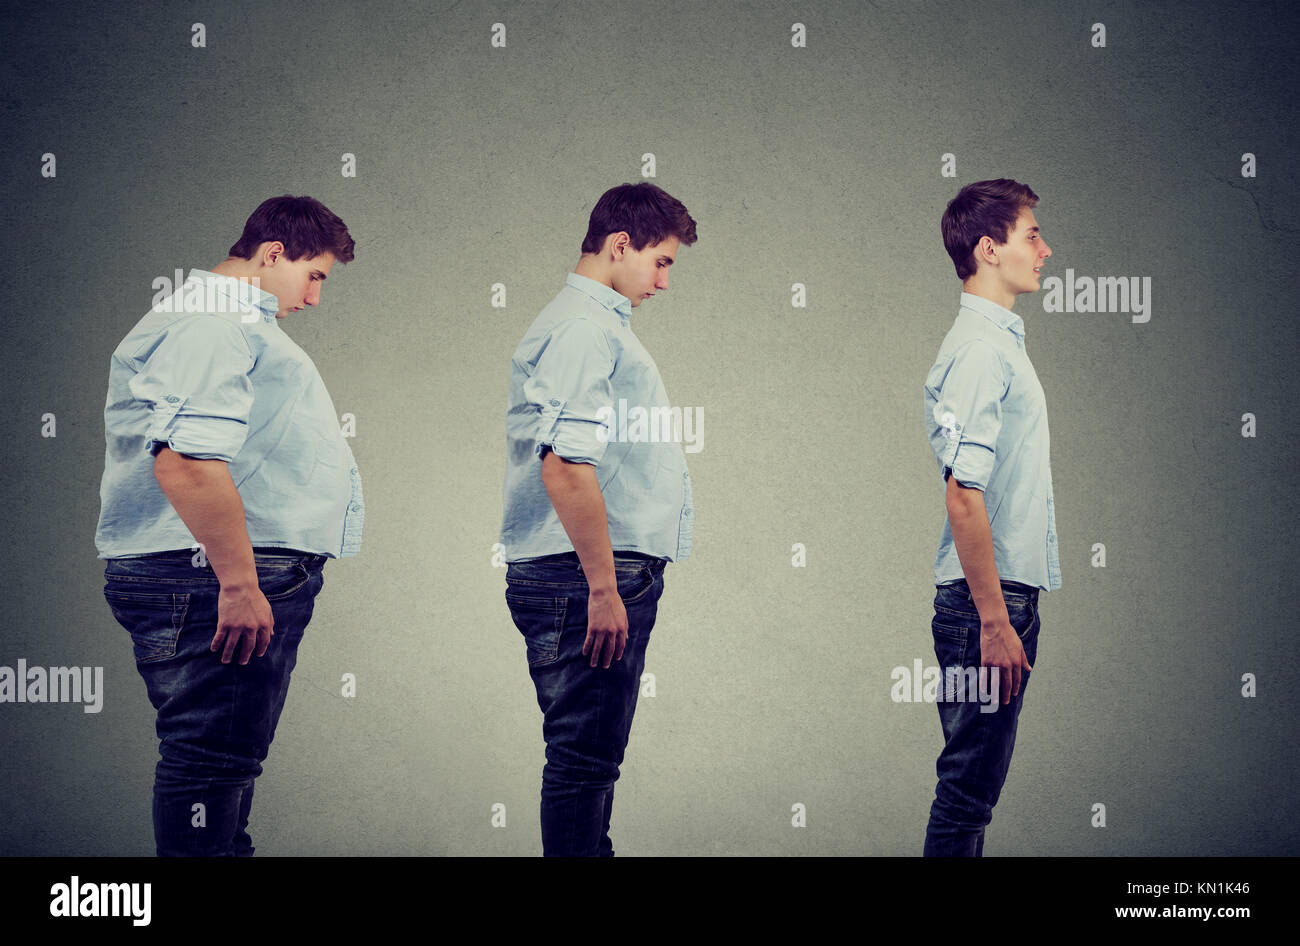 Side profile of a young chubby man transformation into a slim happy person - Stock Image